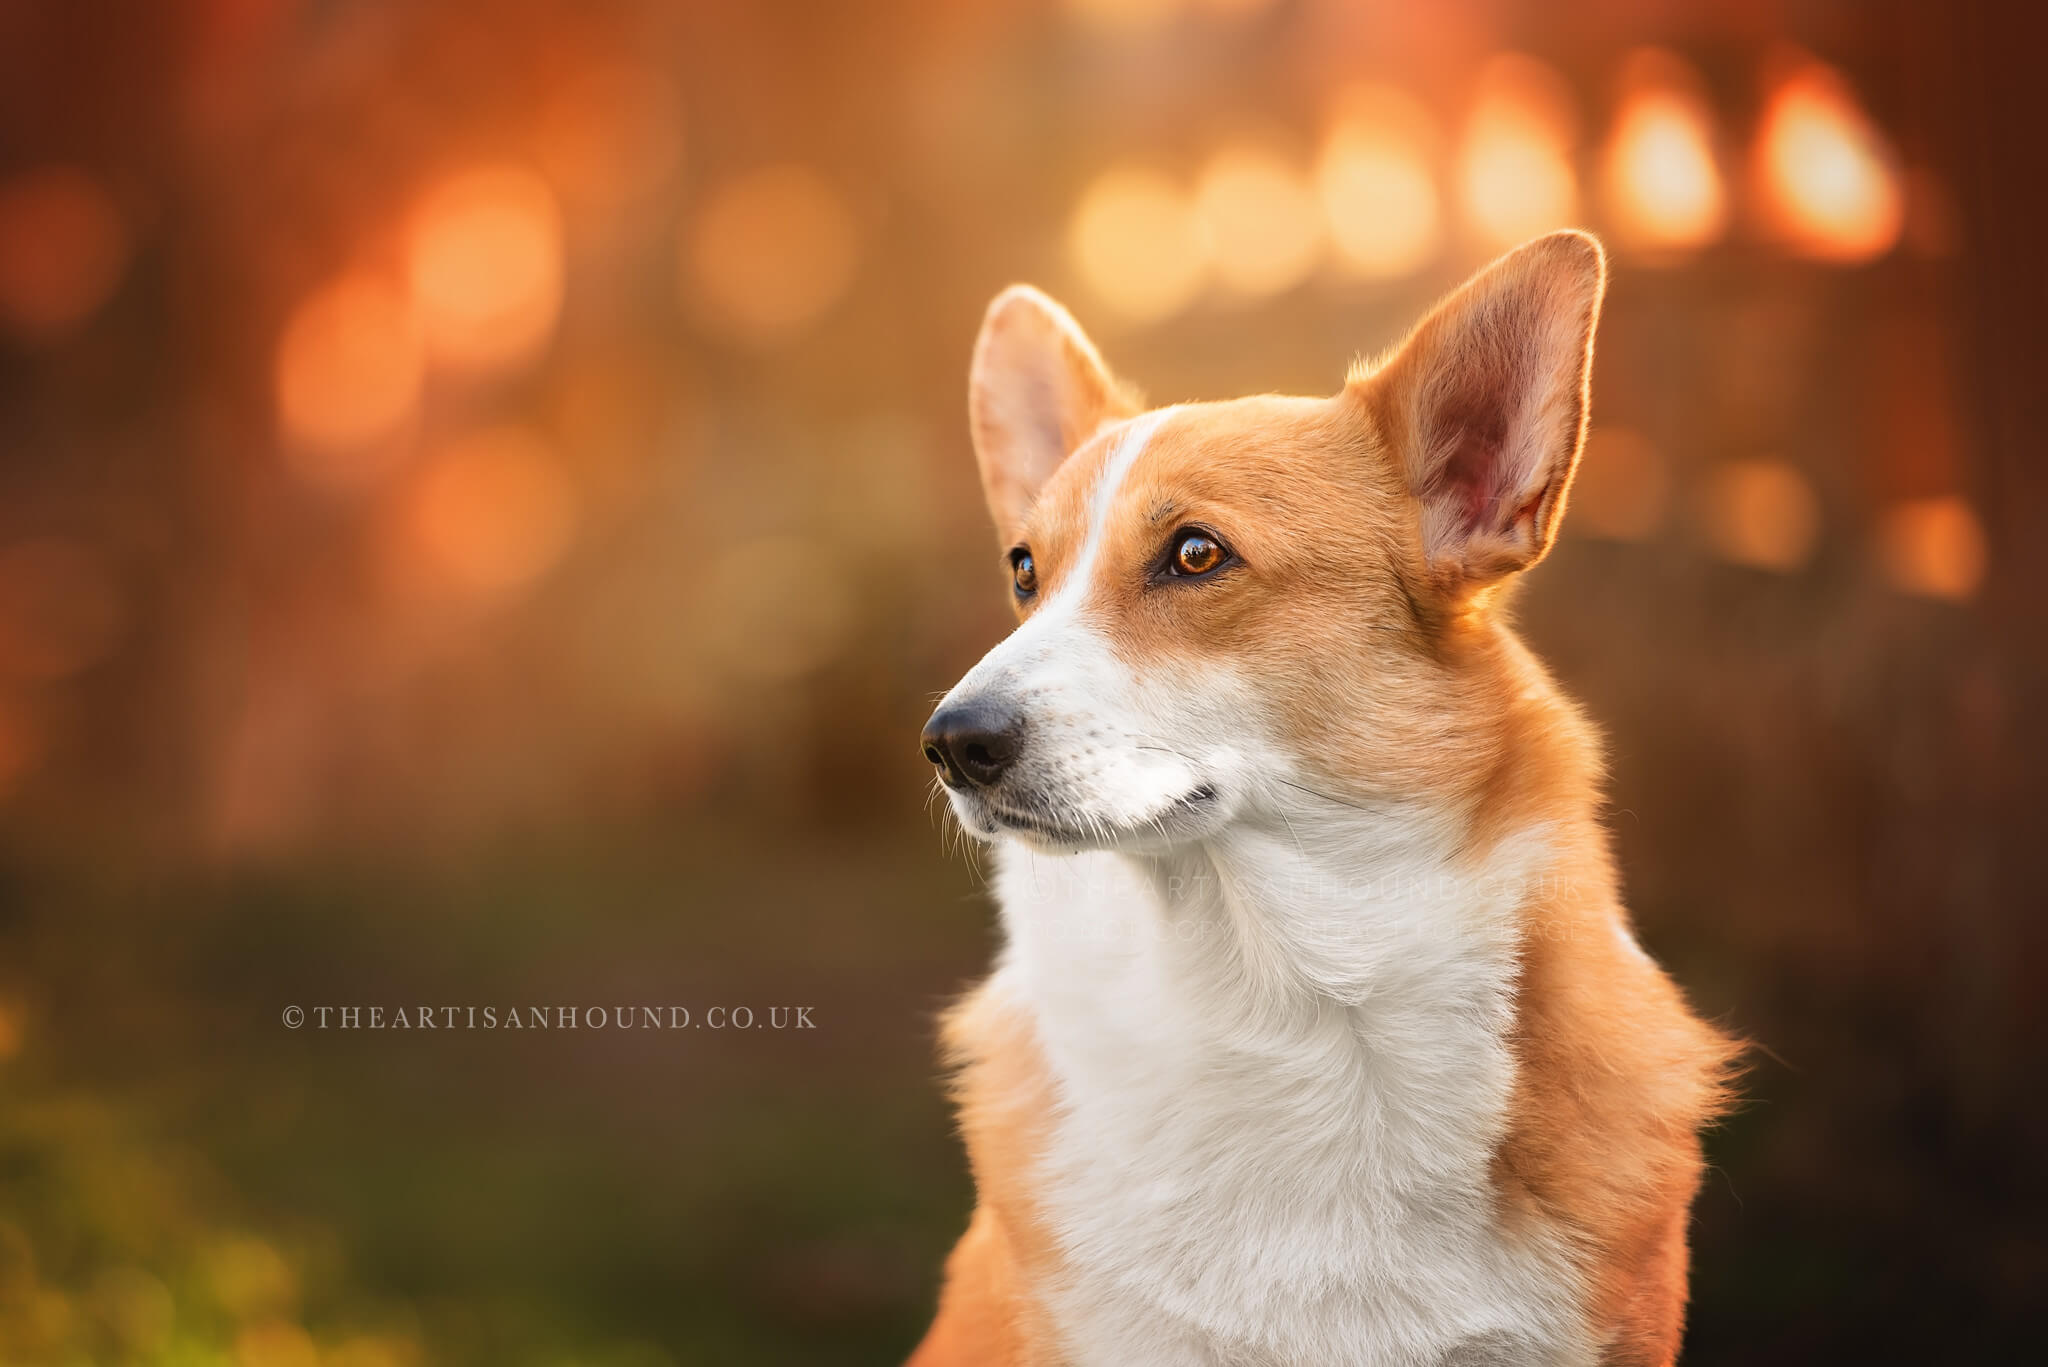 CELEBRATING THE CORGI: GLADYS AT CASTLE ASHBY